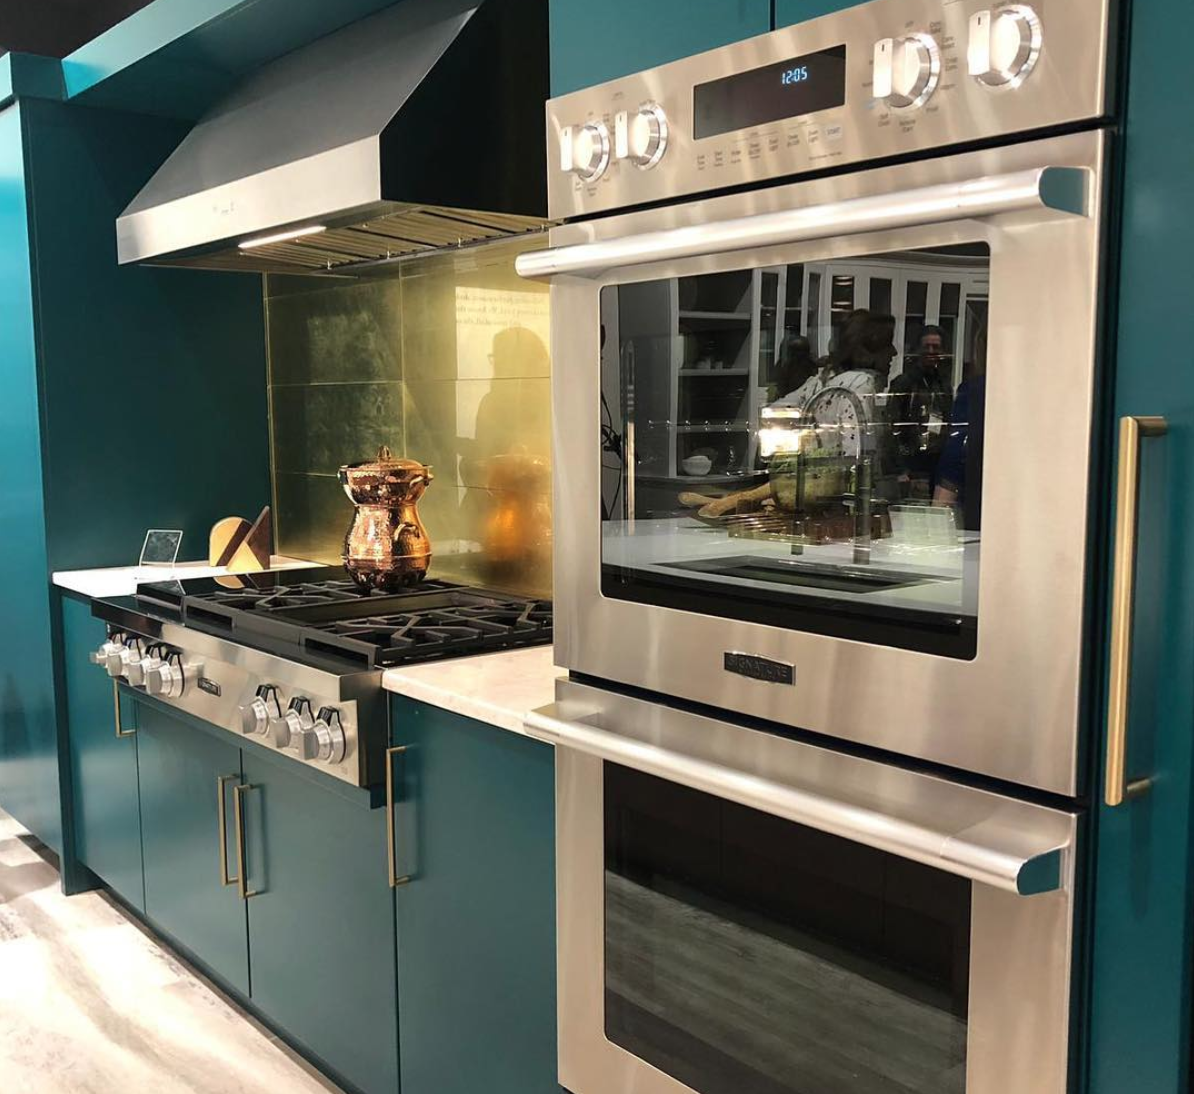 Peacock cabinets at an   SKS Appliance   display at   KBIS